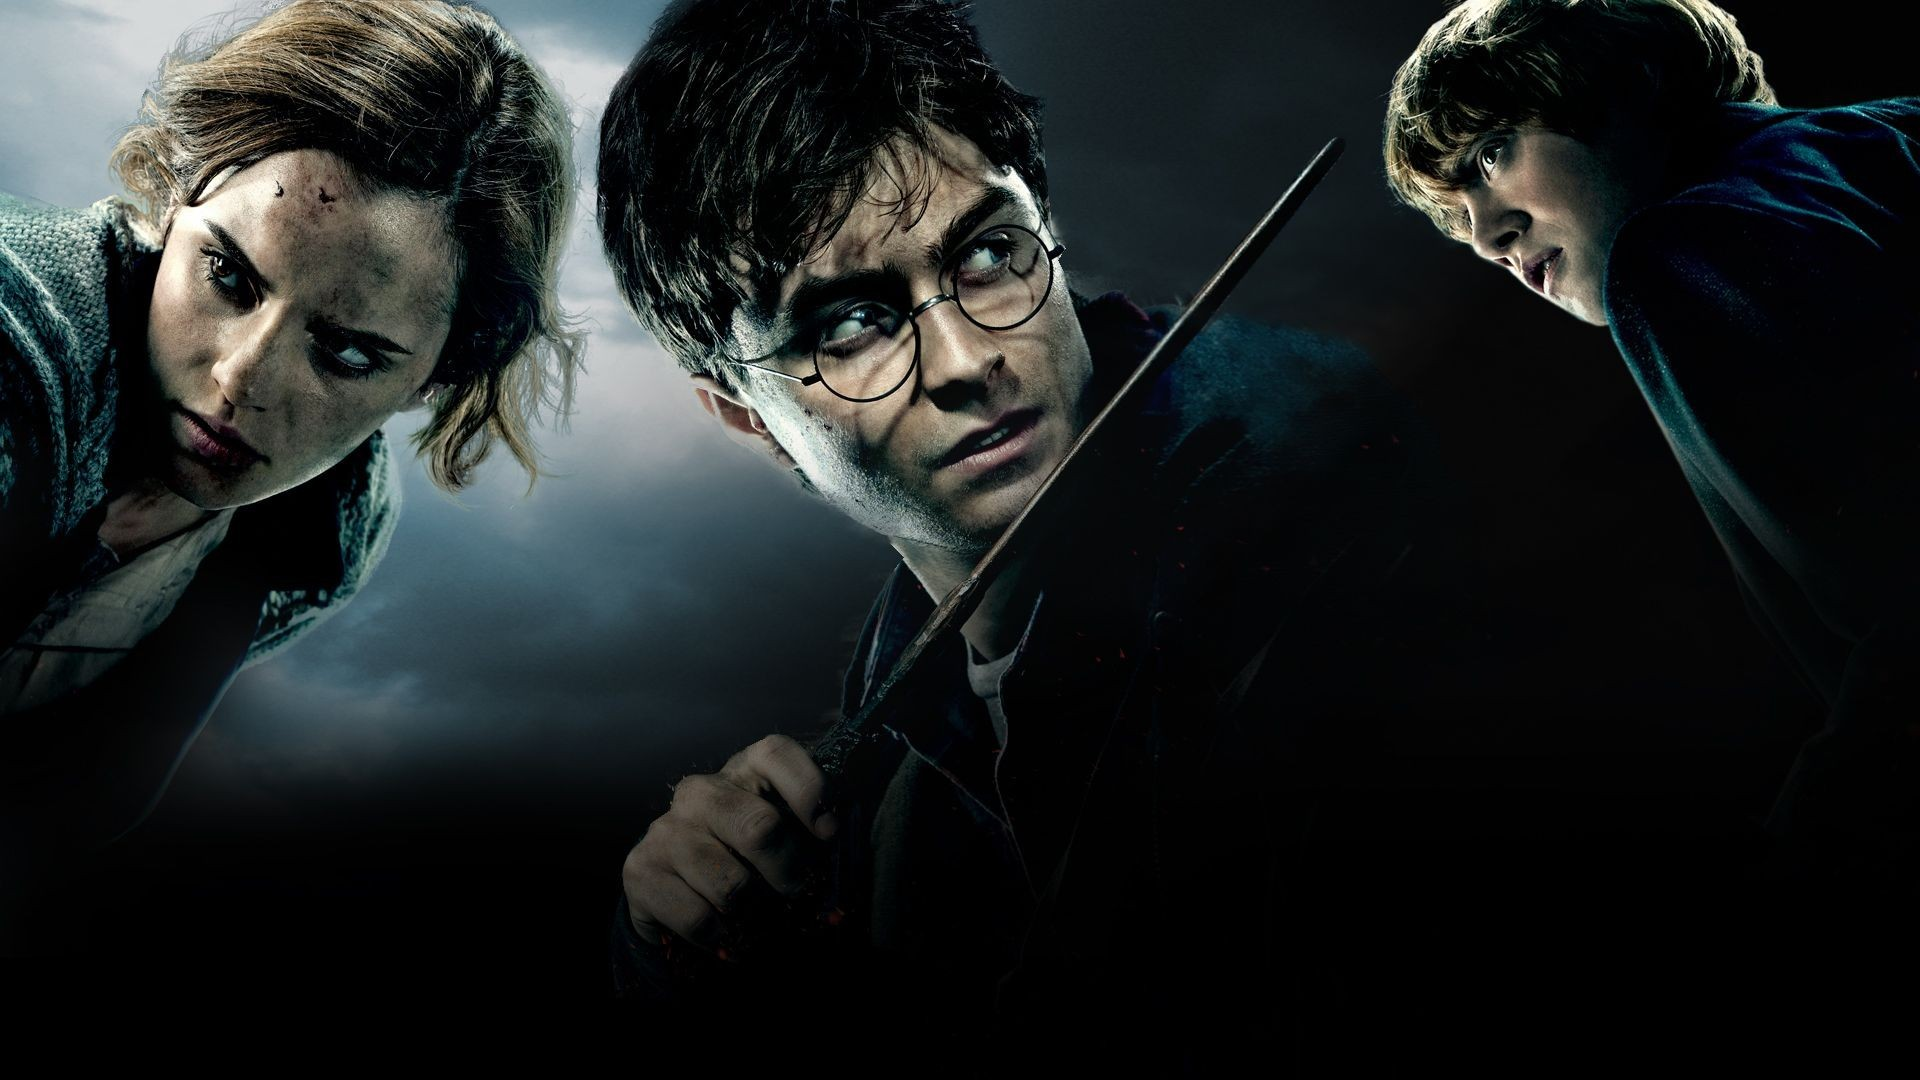 Wonderful Wallpaper Harry Potter Portrait - harry-potter-and-the-deathly-hallows-wallpaper-26  Pic_964483.jpg